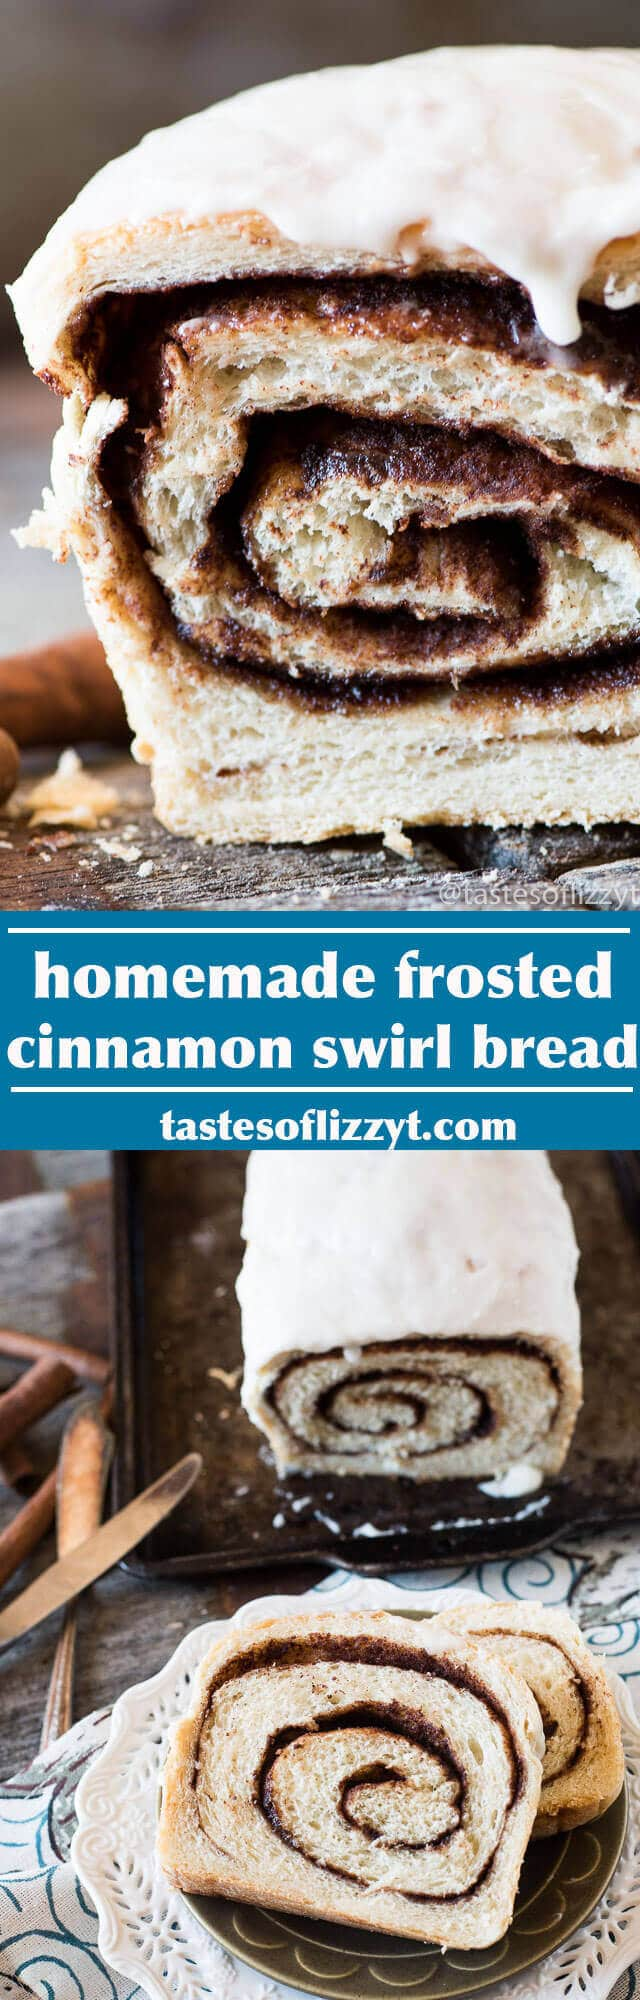 Take a buttermilk bread dough recipe and turn it into a sweet cinnamon swirl bread. Find out the secret for a gooey cinnamon swirl throughout. via @tastesoflizzyt